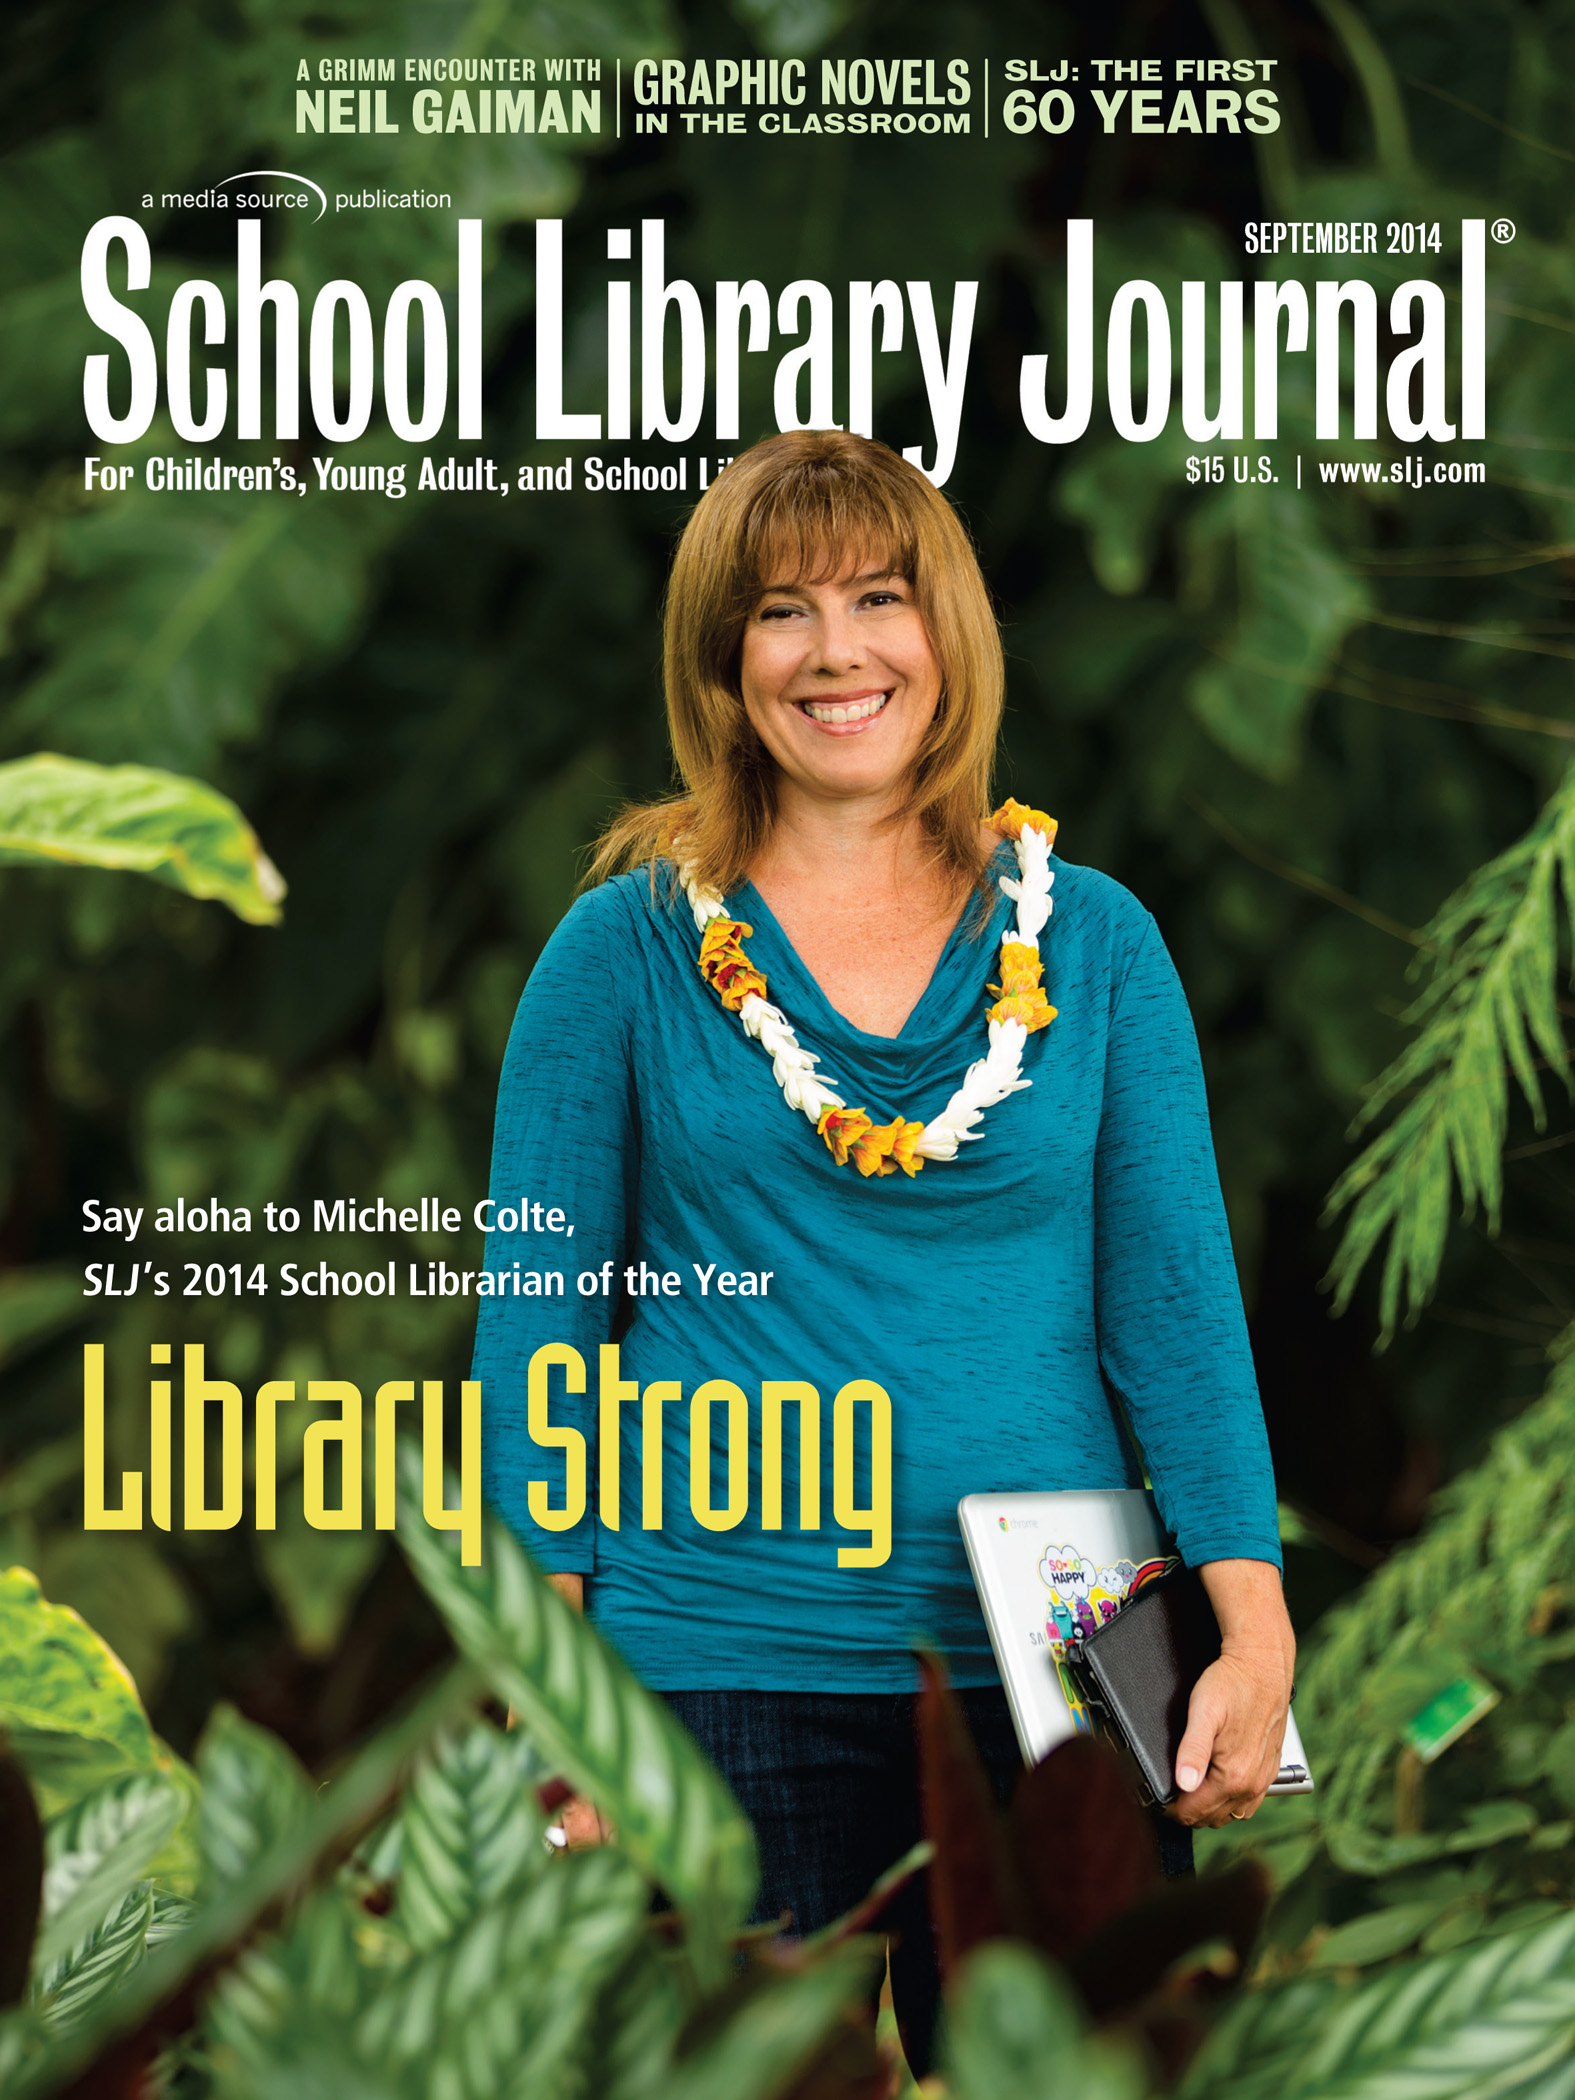 Meet Michelle Colte, SLJ's 2014 School Librarian of the Year